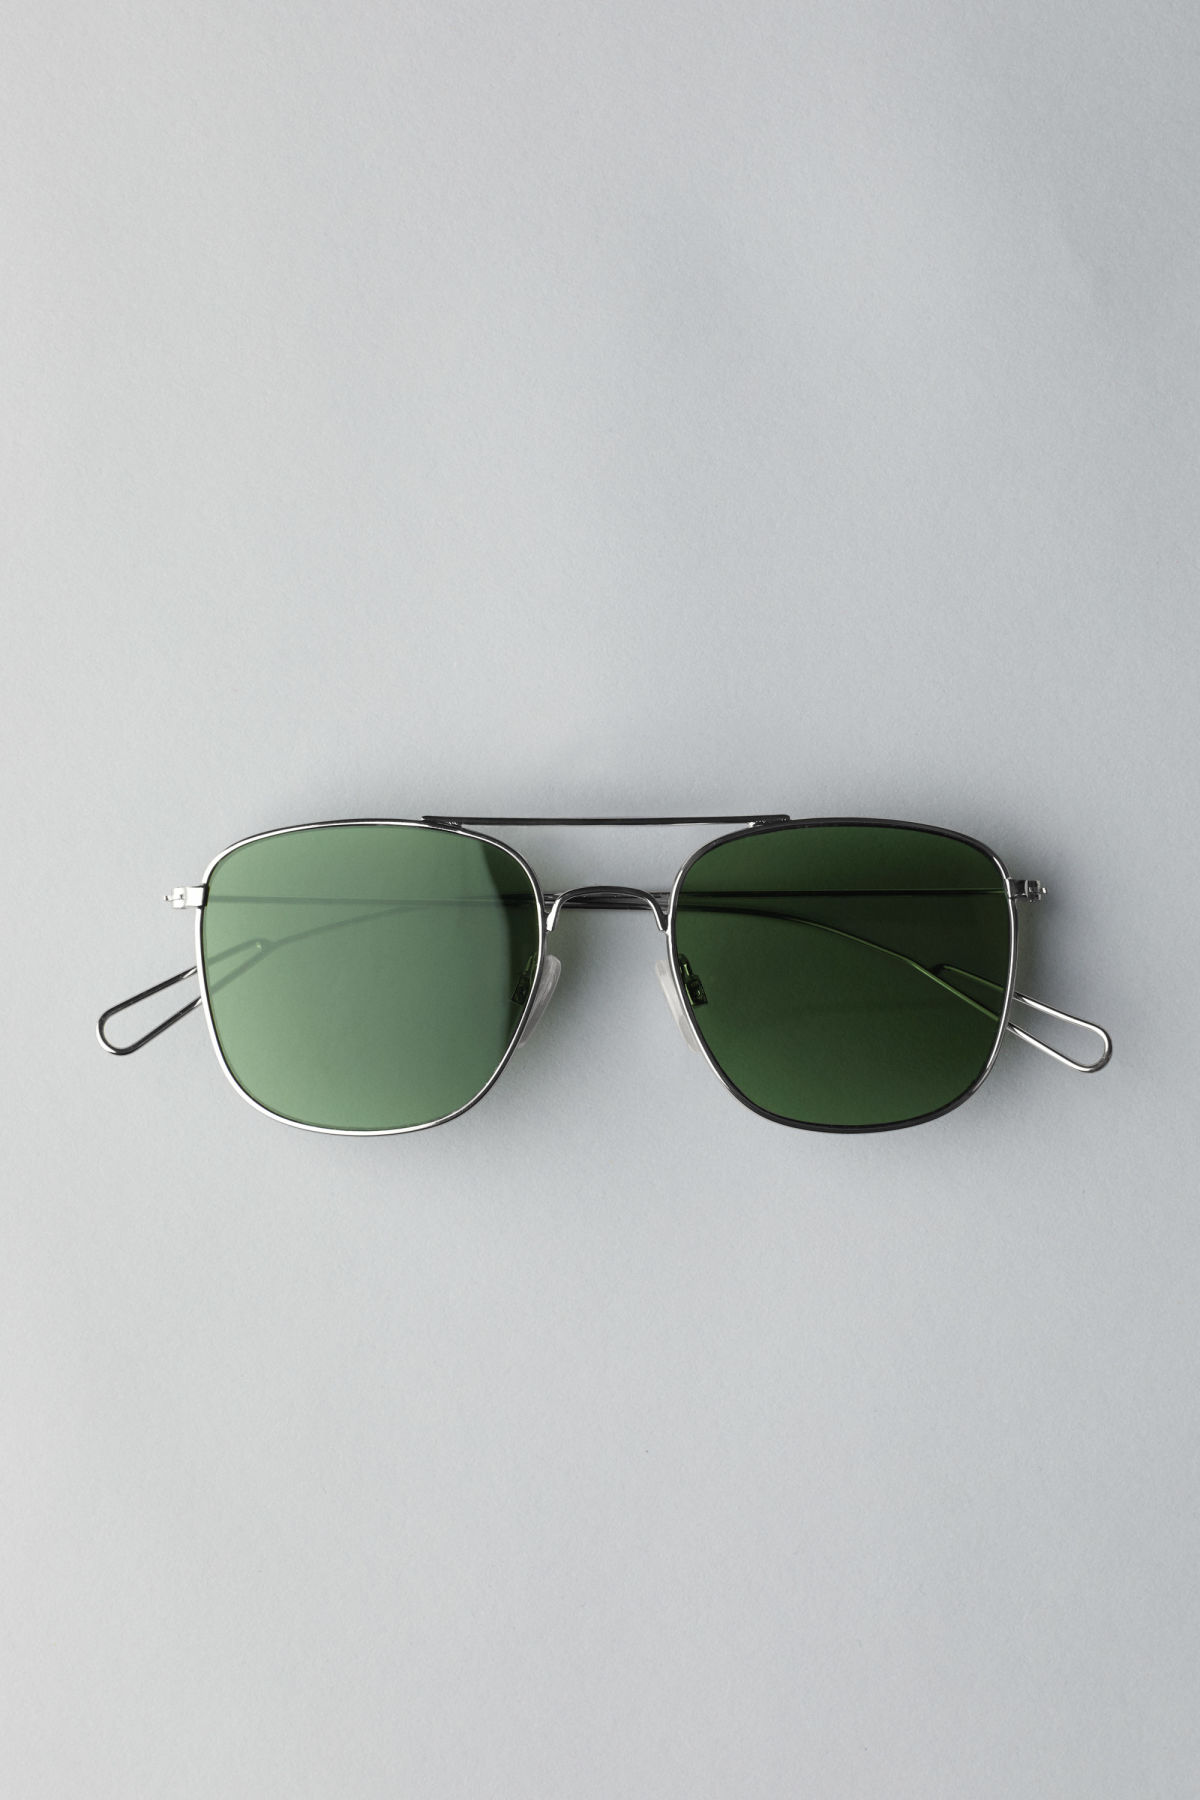 Weekday Cargo Squared Sunglasses - Silver aNMRCr8L